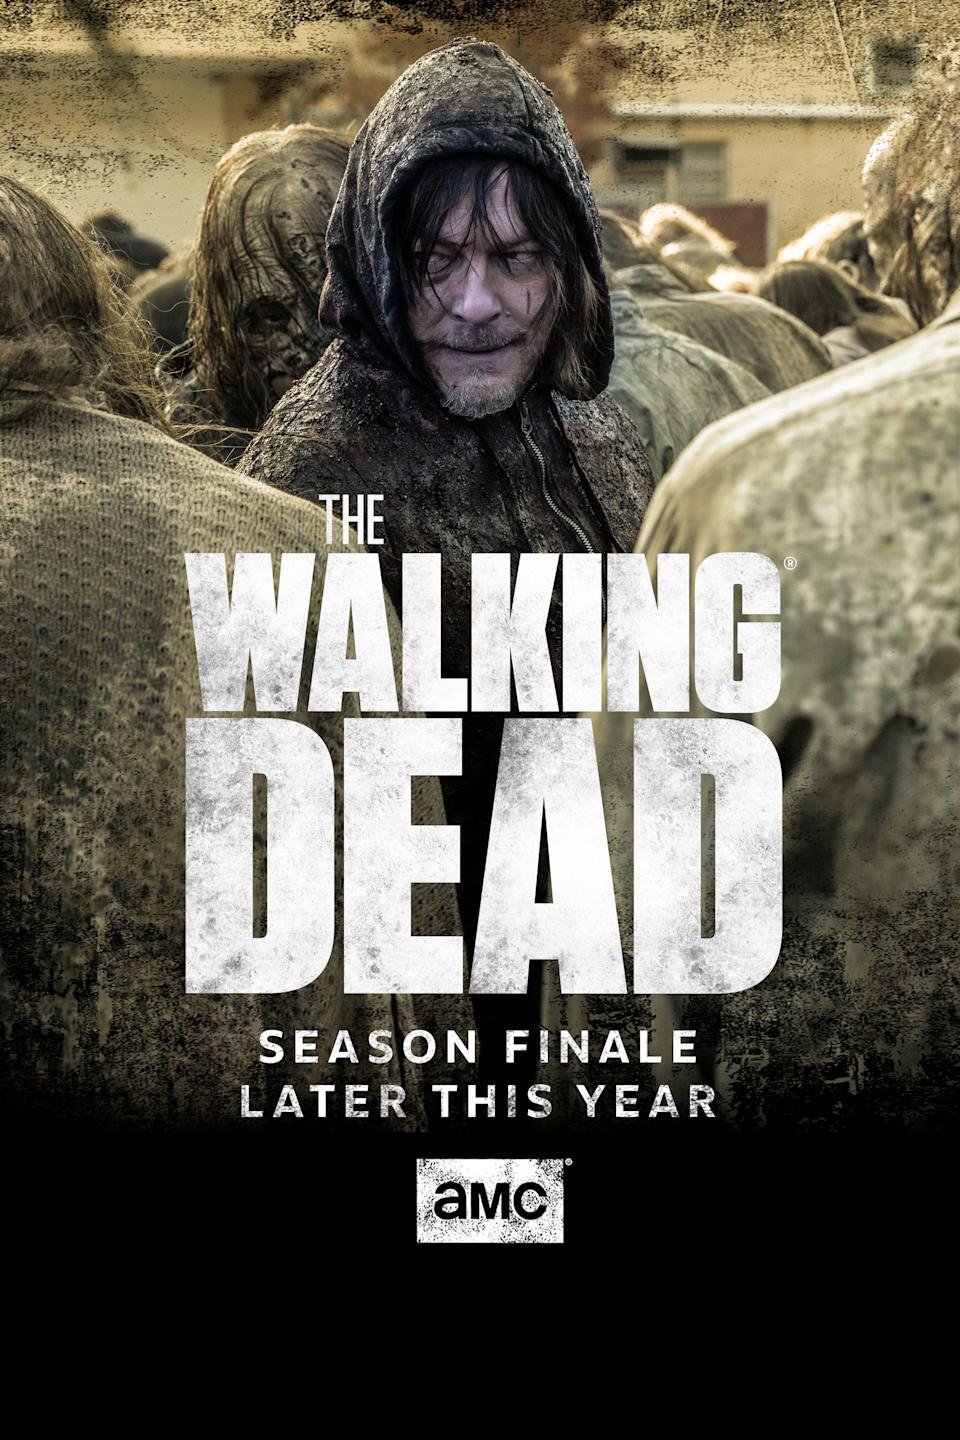 Daryl teased a new meat suit to walk among the dead on the finale.